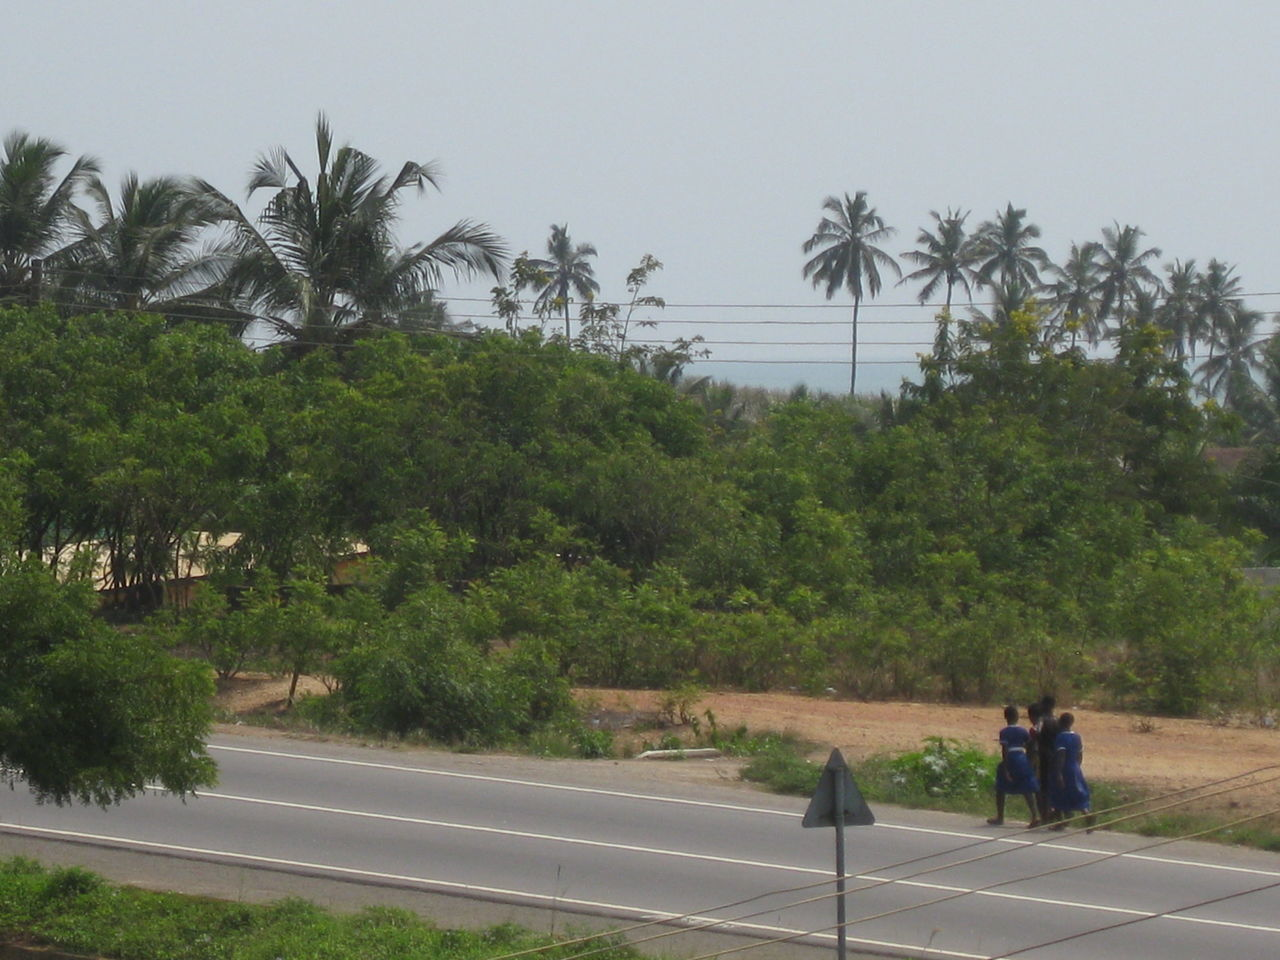 tree, palm tree, road, walking, growth, men, nature, real people, outdoors, day, sky, people